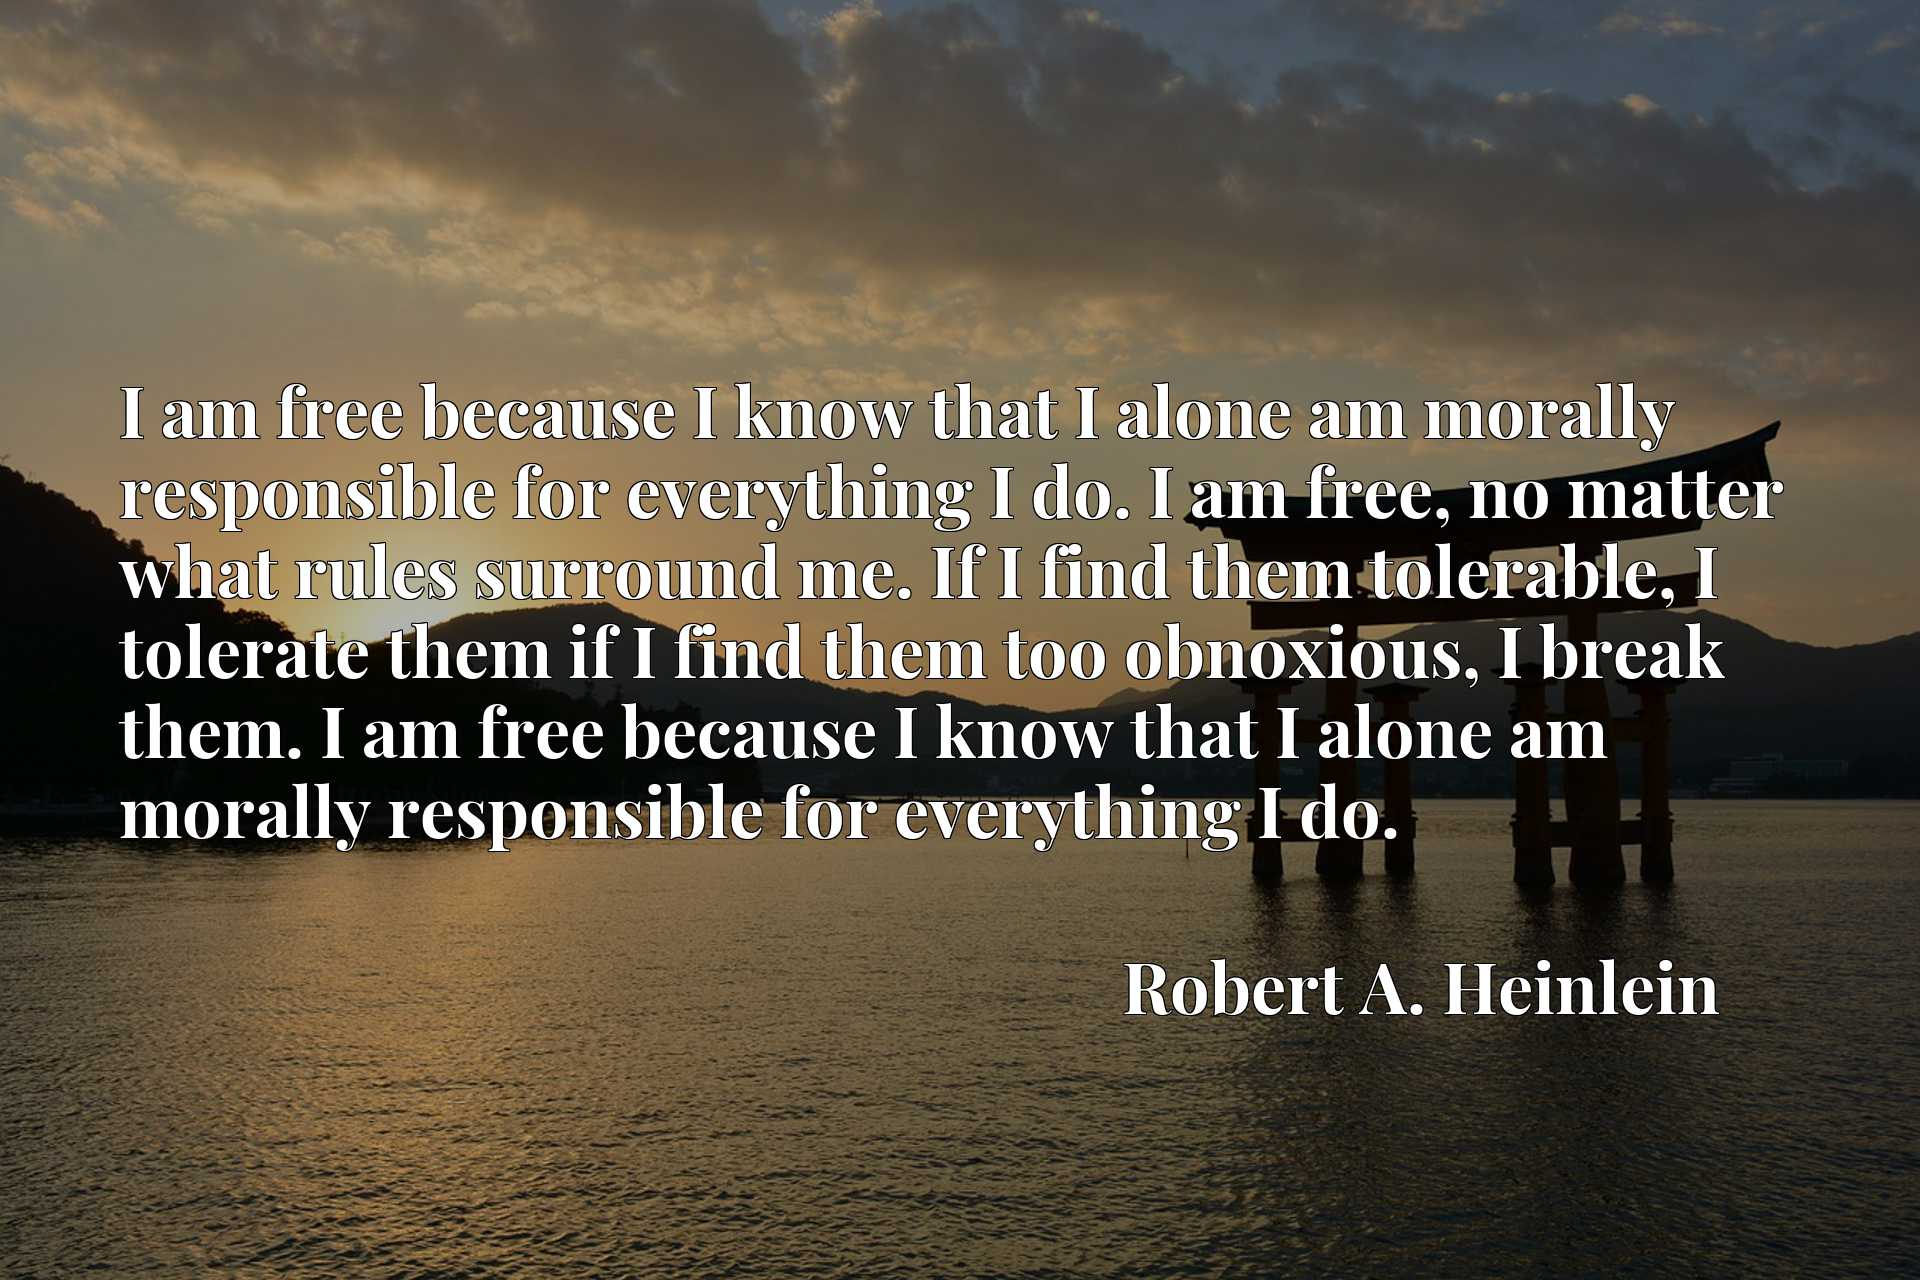 I am free because I know that I alone am morally responsible for everything I do. I am free, no matter what rules surround me. If I find them tolerable, I tolerate them if I find them too obnoxious, I break them. I am free because I know that I alone am morally responsible for everything I do.